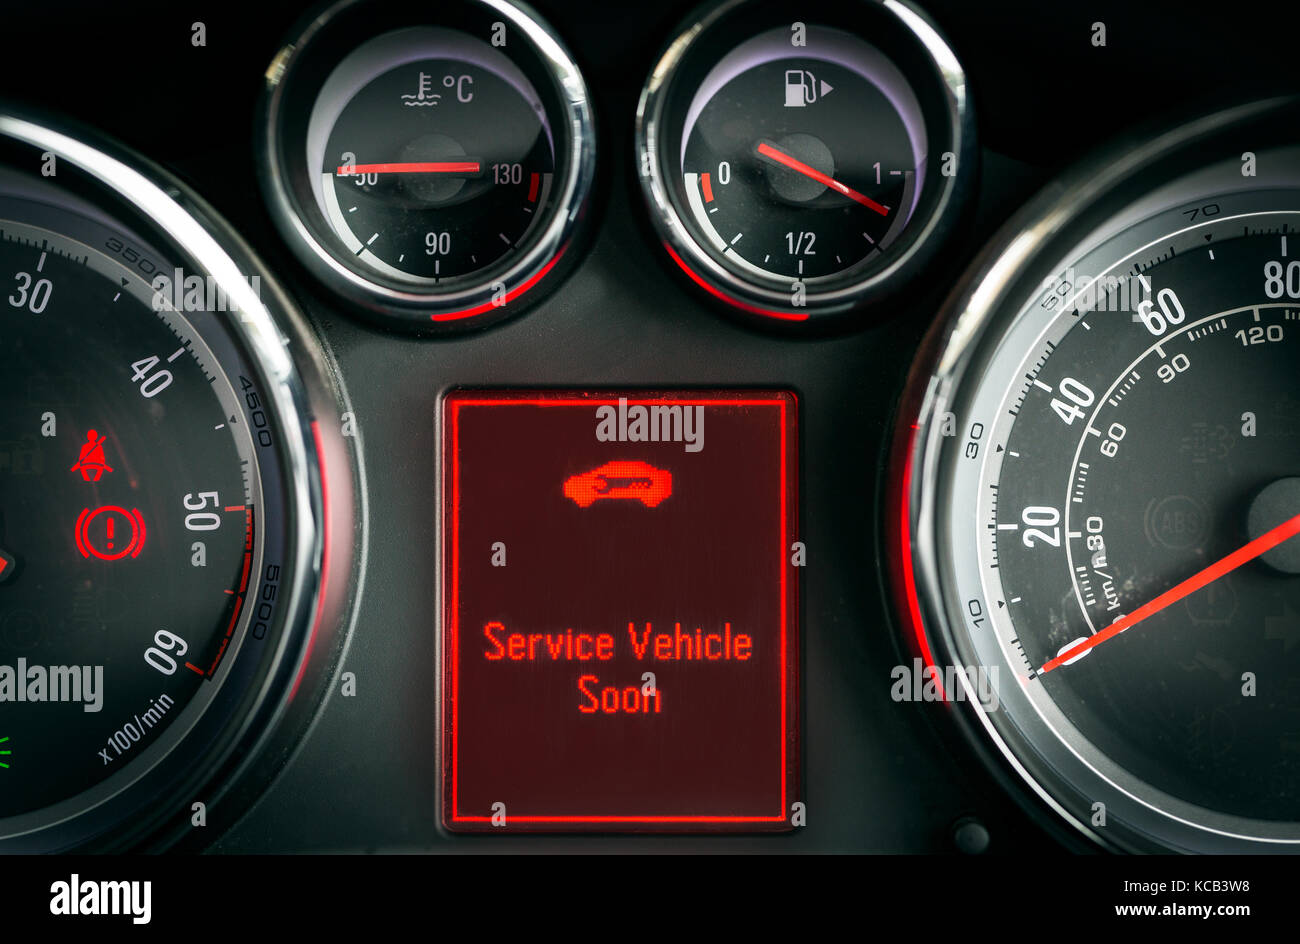 Service car warning light on a car dashboard - Stock Image